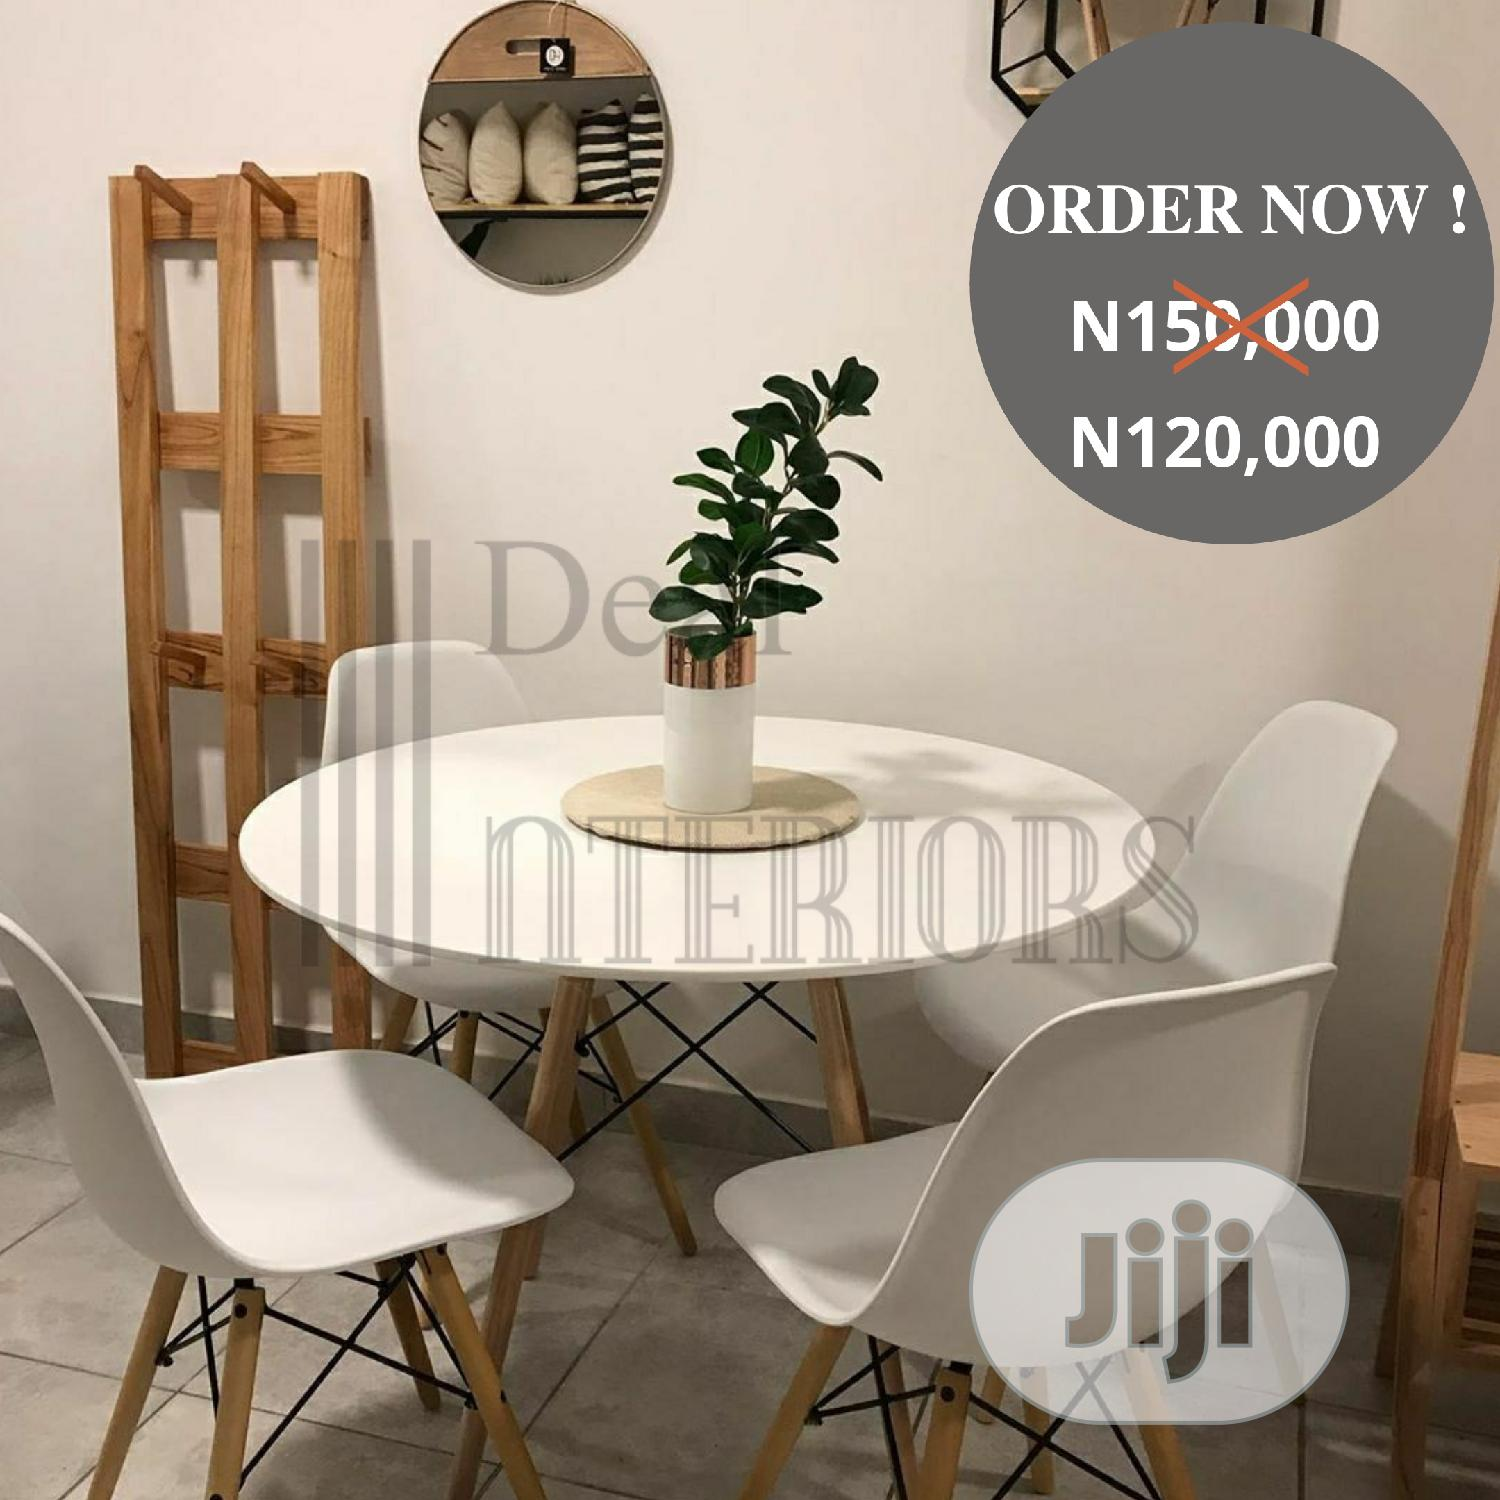 4 Seater Dining Set | Furniture for sale in Yaba, Lagos State, Nigeria